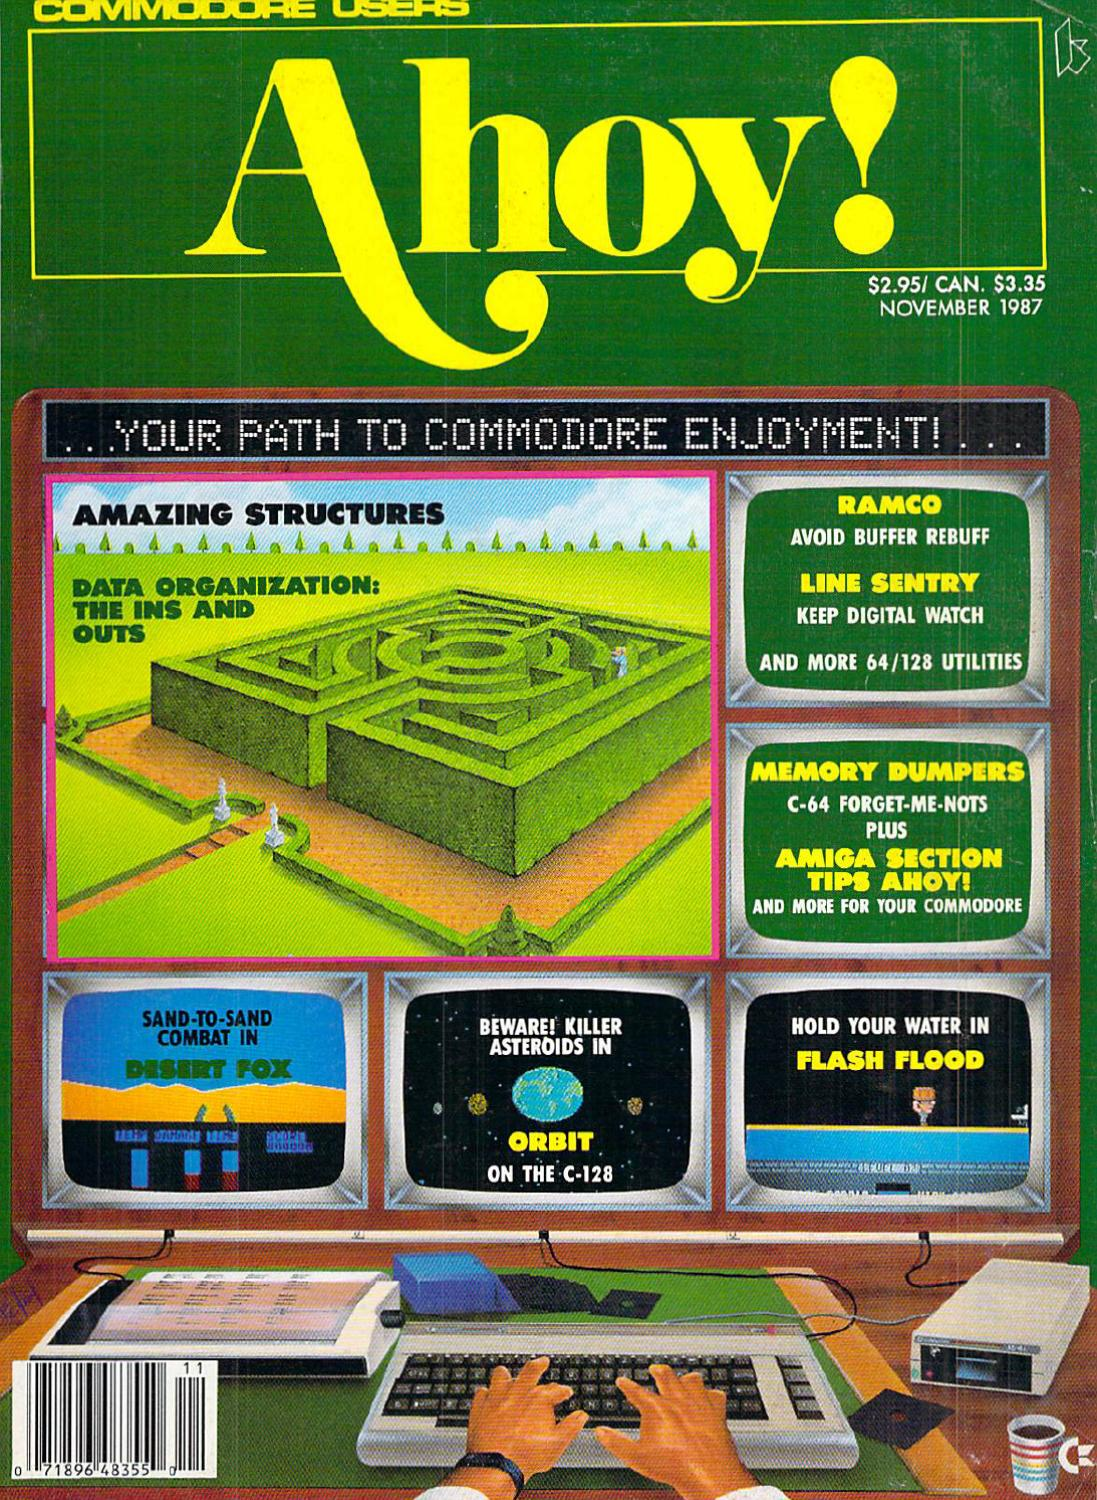 Ahoy Issue 47 1987 Nov By Zetmoon Issuu Electronics Forum Gt Solved Proteus Circuit Simulation